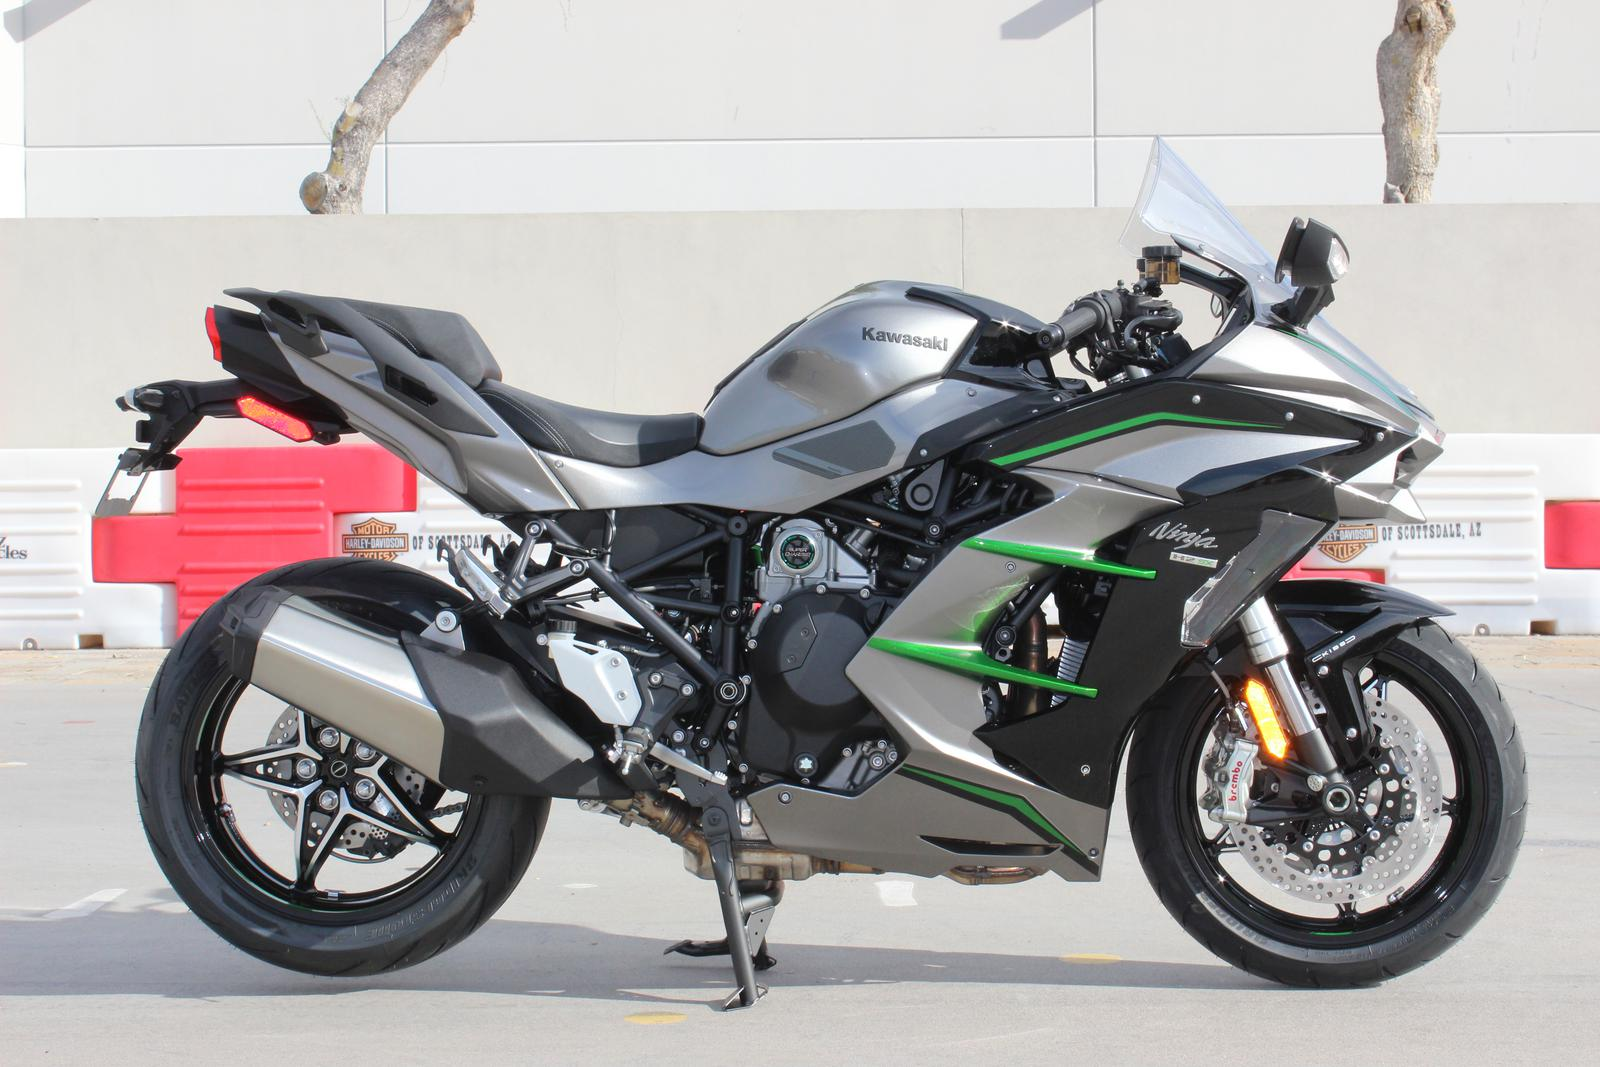 2019 Kawasaki Ninja H2 Sx Se For Sale In Scottsdale Az Go Az